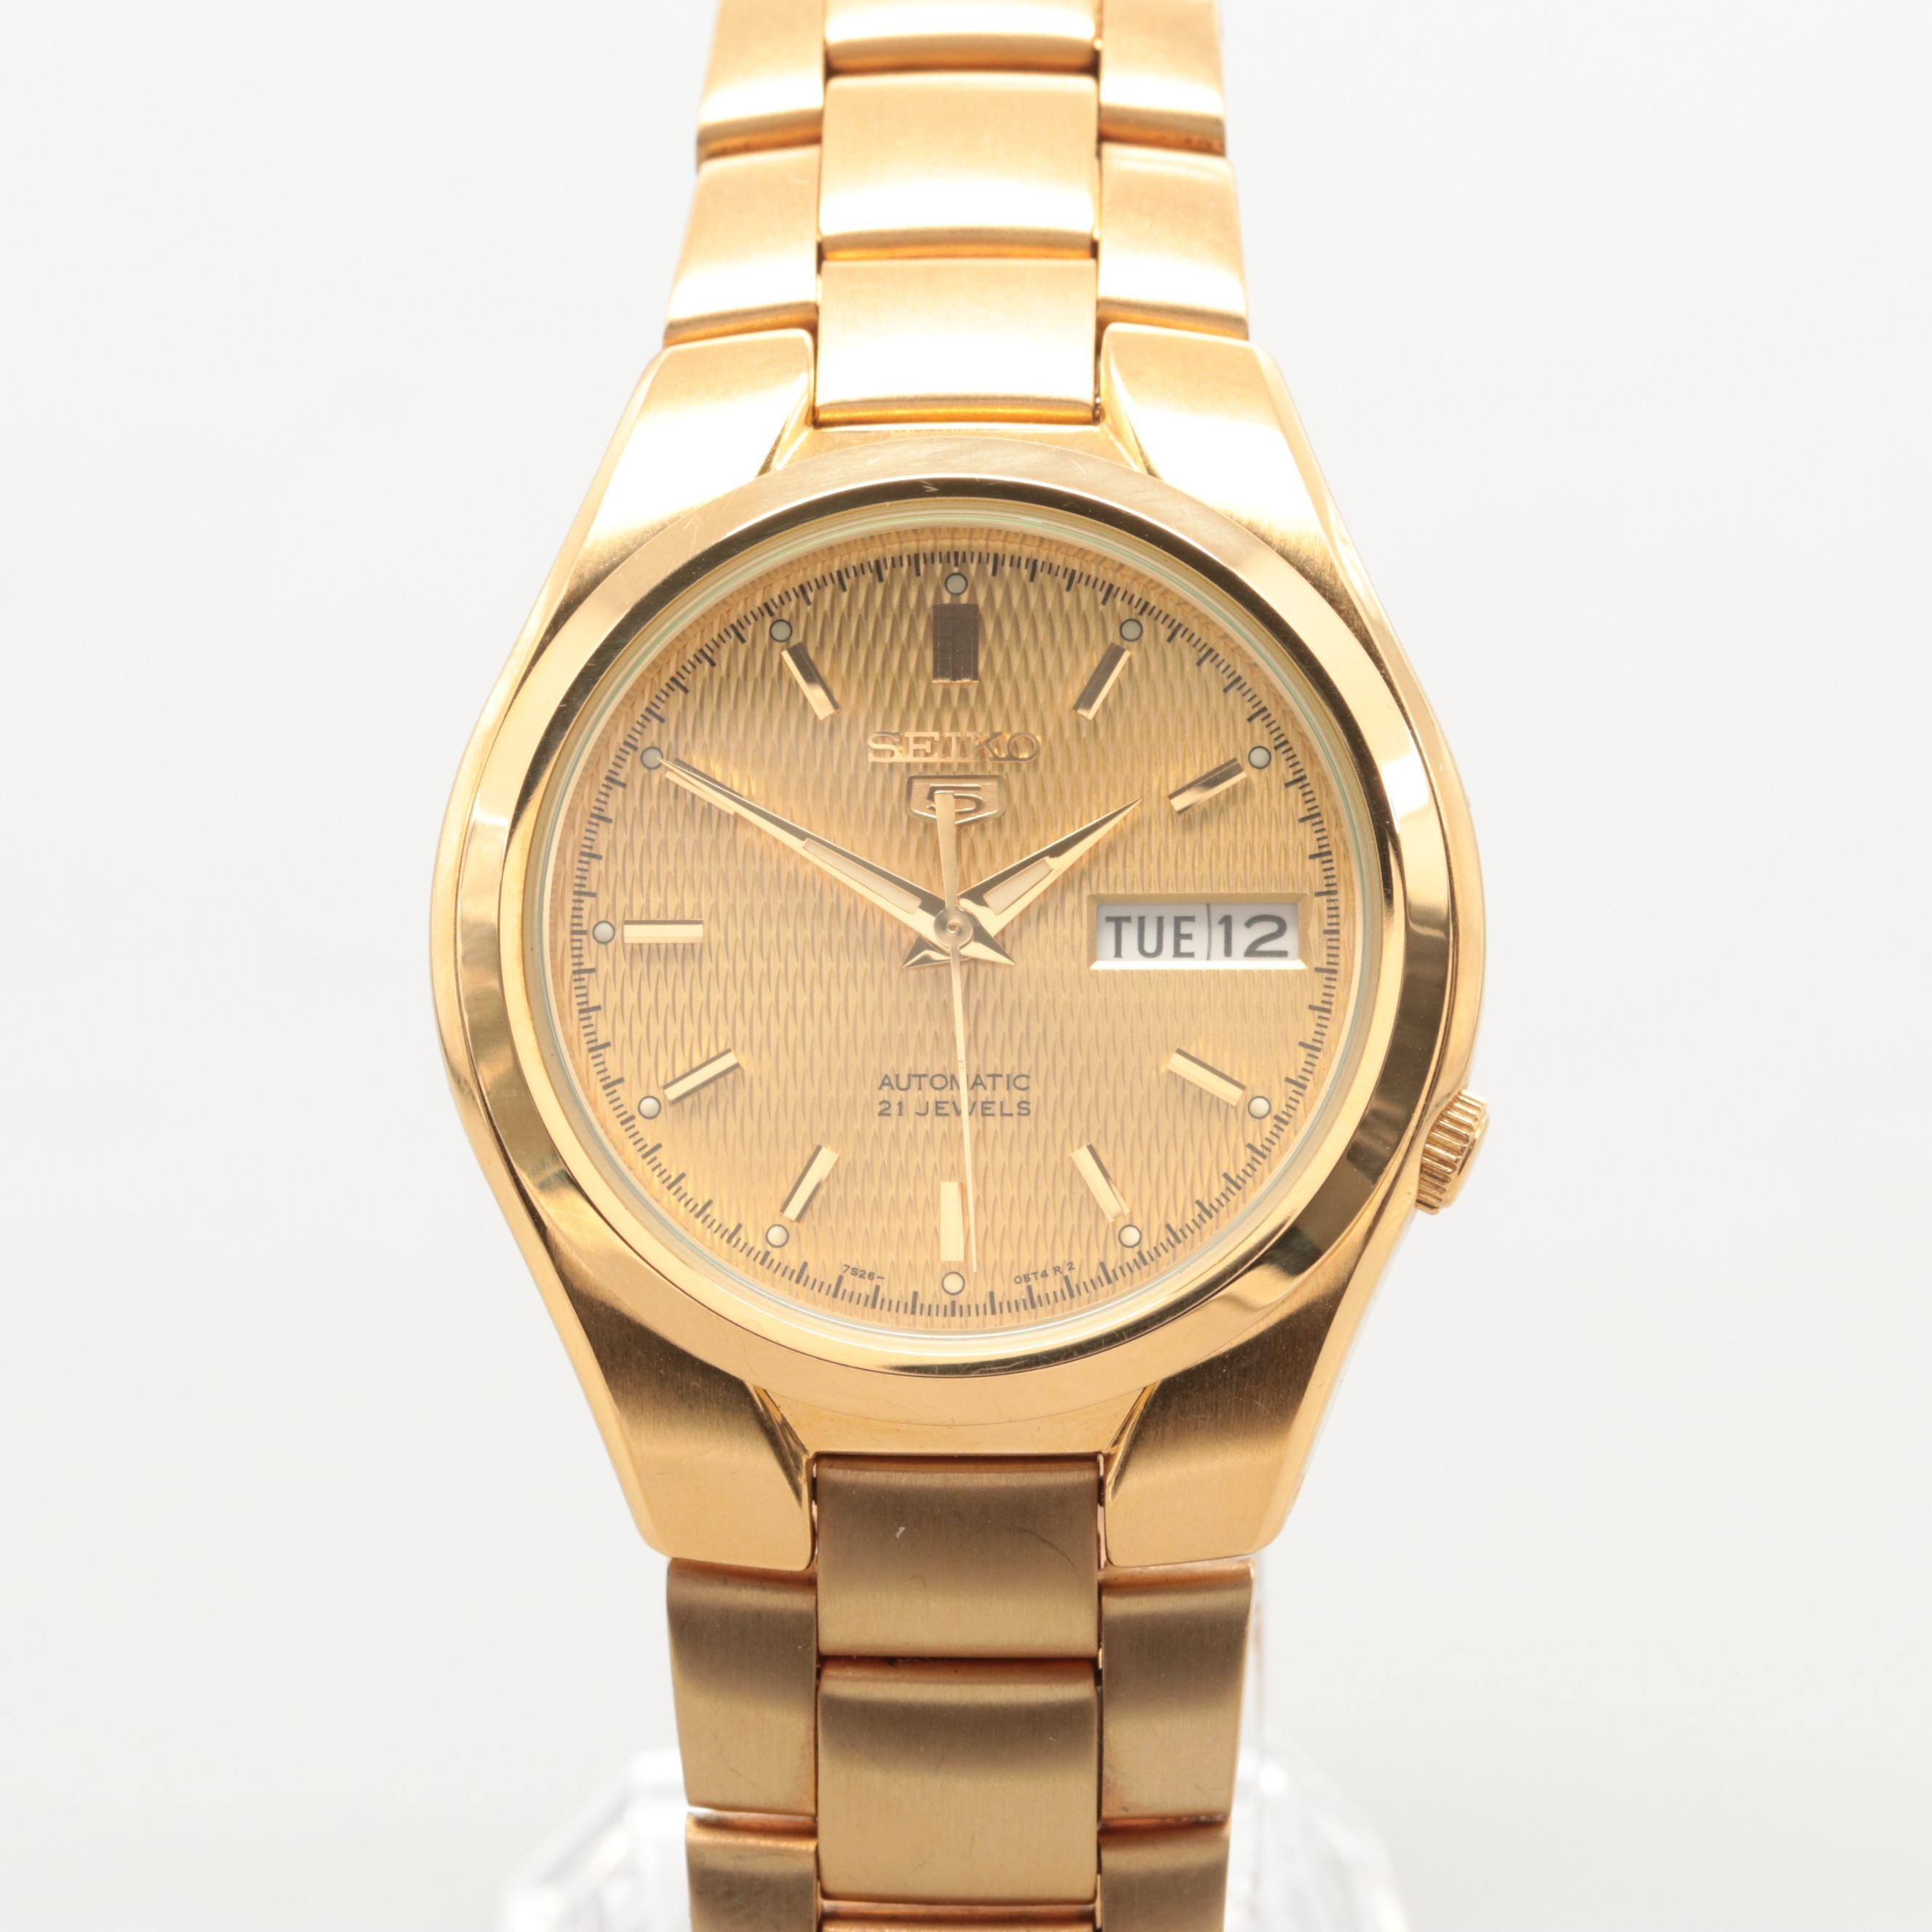 Seiko Gold Plated Stainless Steel Automatic Wristwatch With Day-Date Window